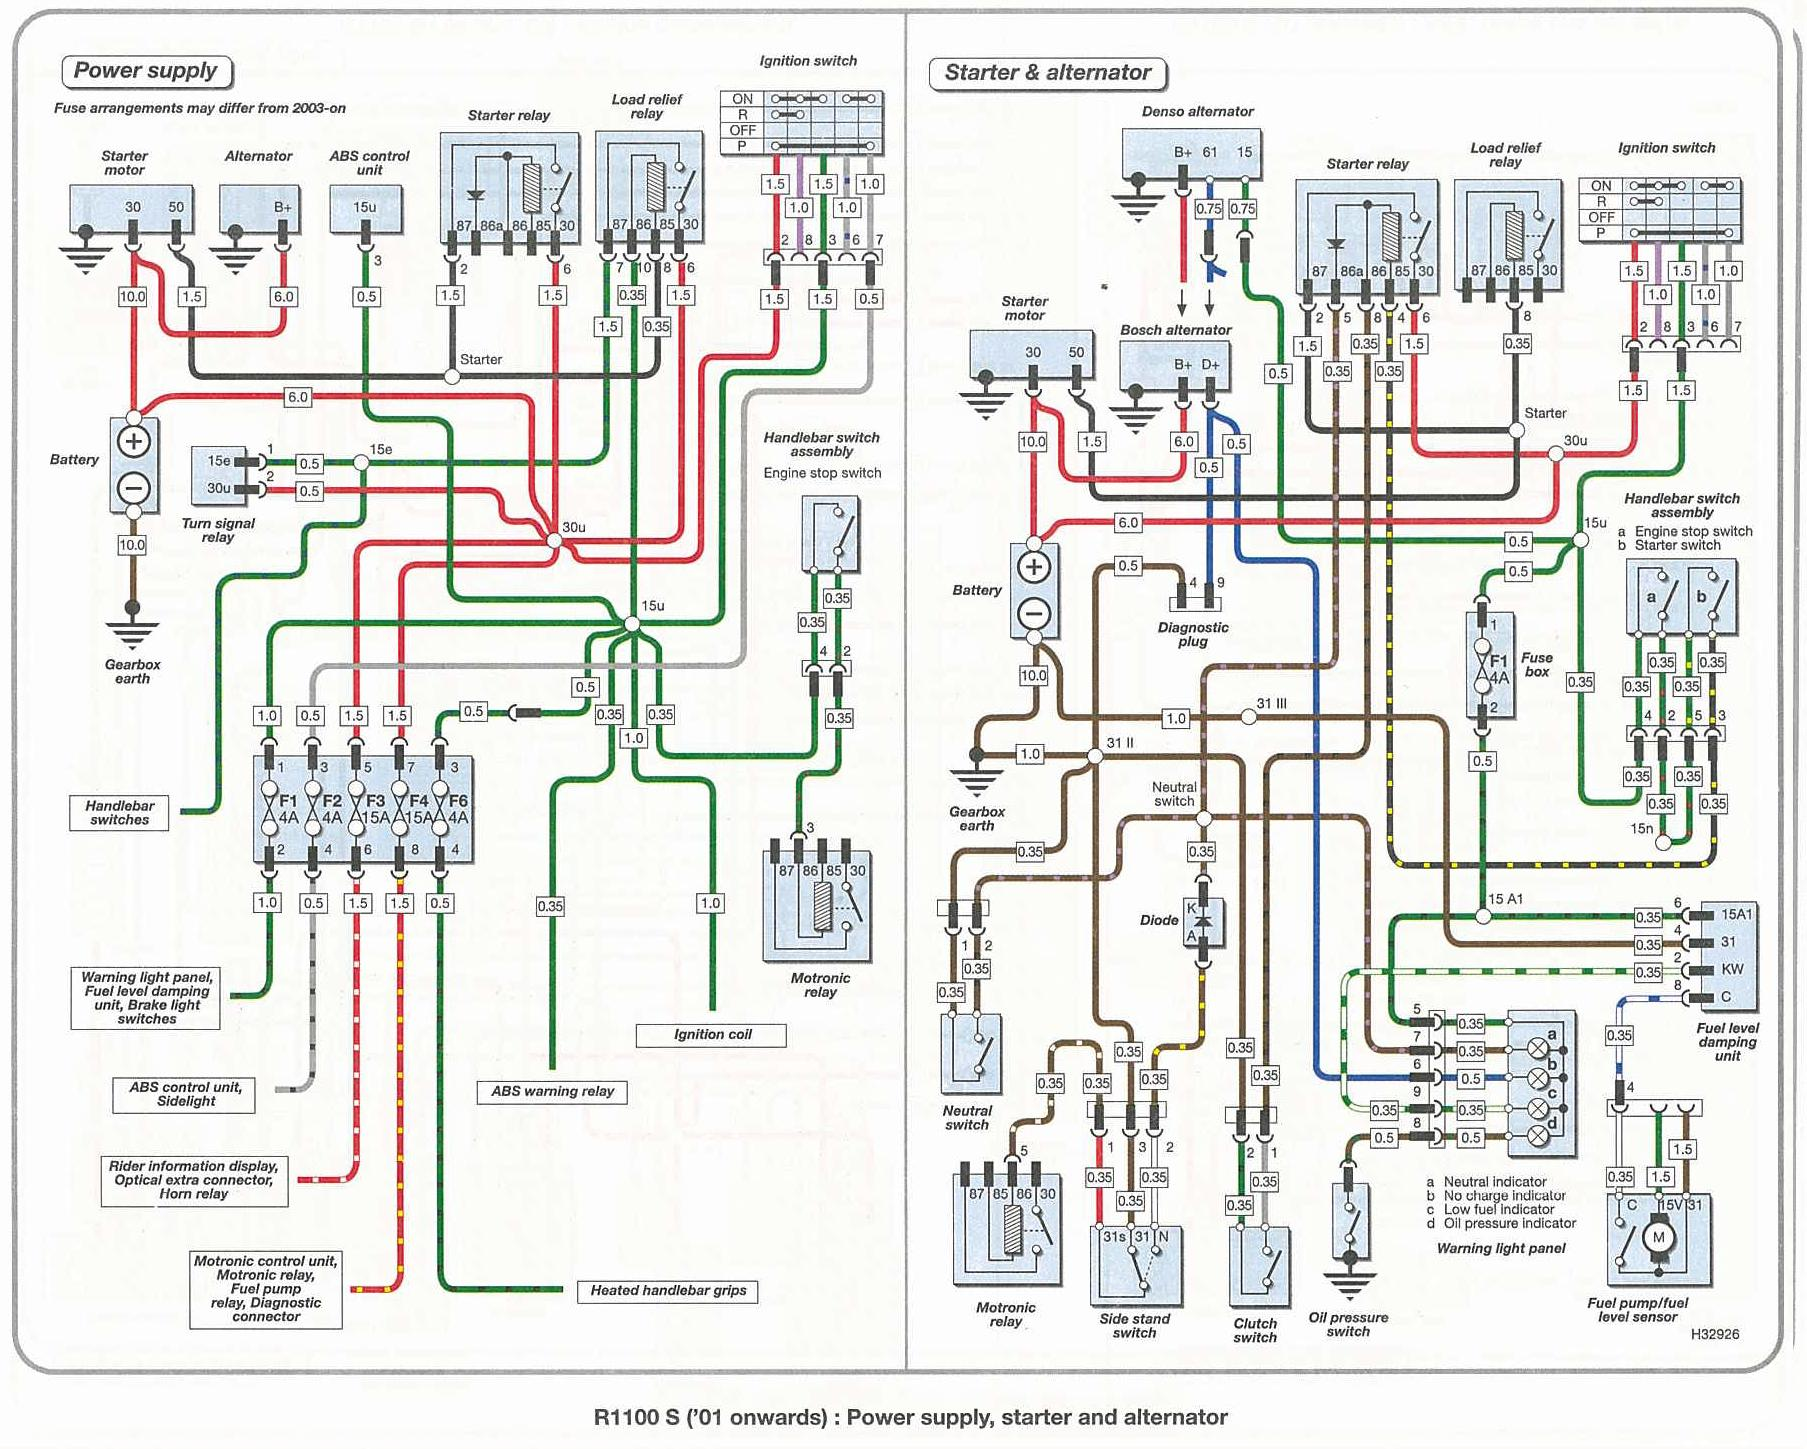 wiring05 bmw wiring diagram bmw wiring diagrams e39 \u2022 wiring diagrams j bmw 2002 wiring diagram at gsmx.co